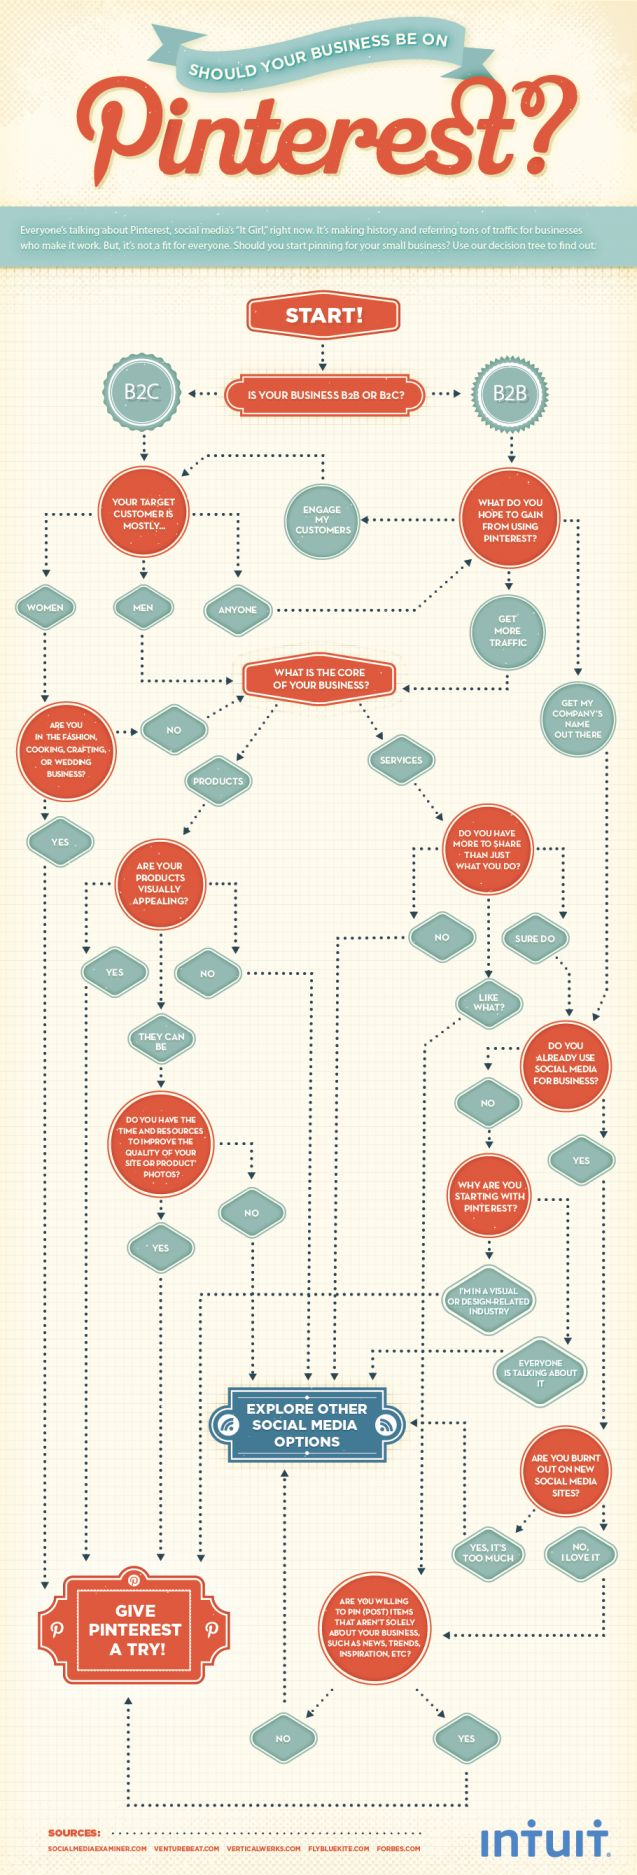 Should Your Business Be On Pinterest? #infographic